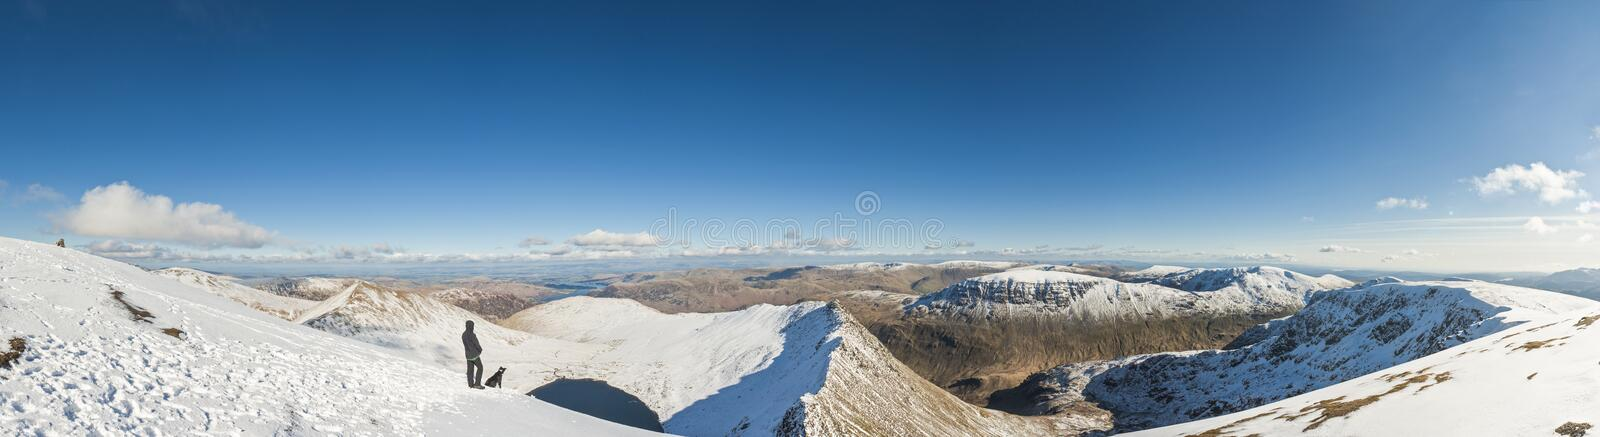 Dramatic snow capped mountains, Lake District, England, UK royalty free stock photography